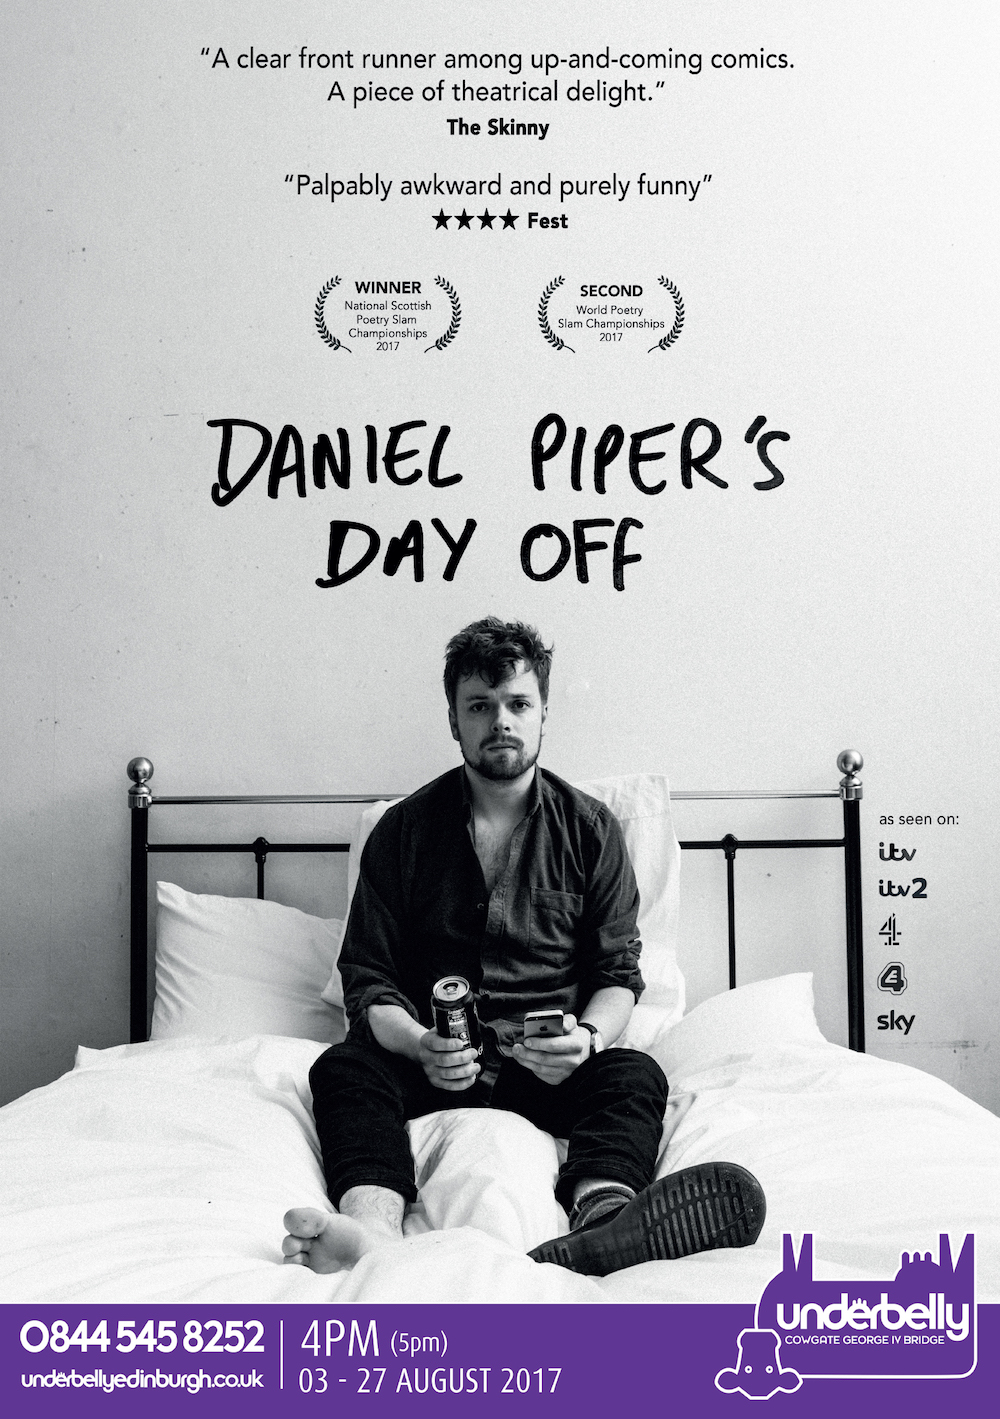 Daniel Piper's Day Off, 2017